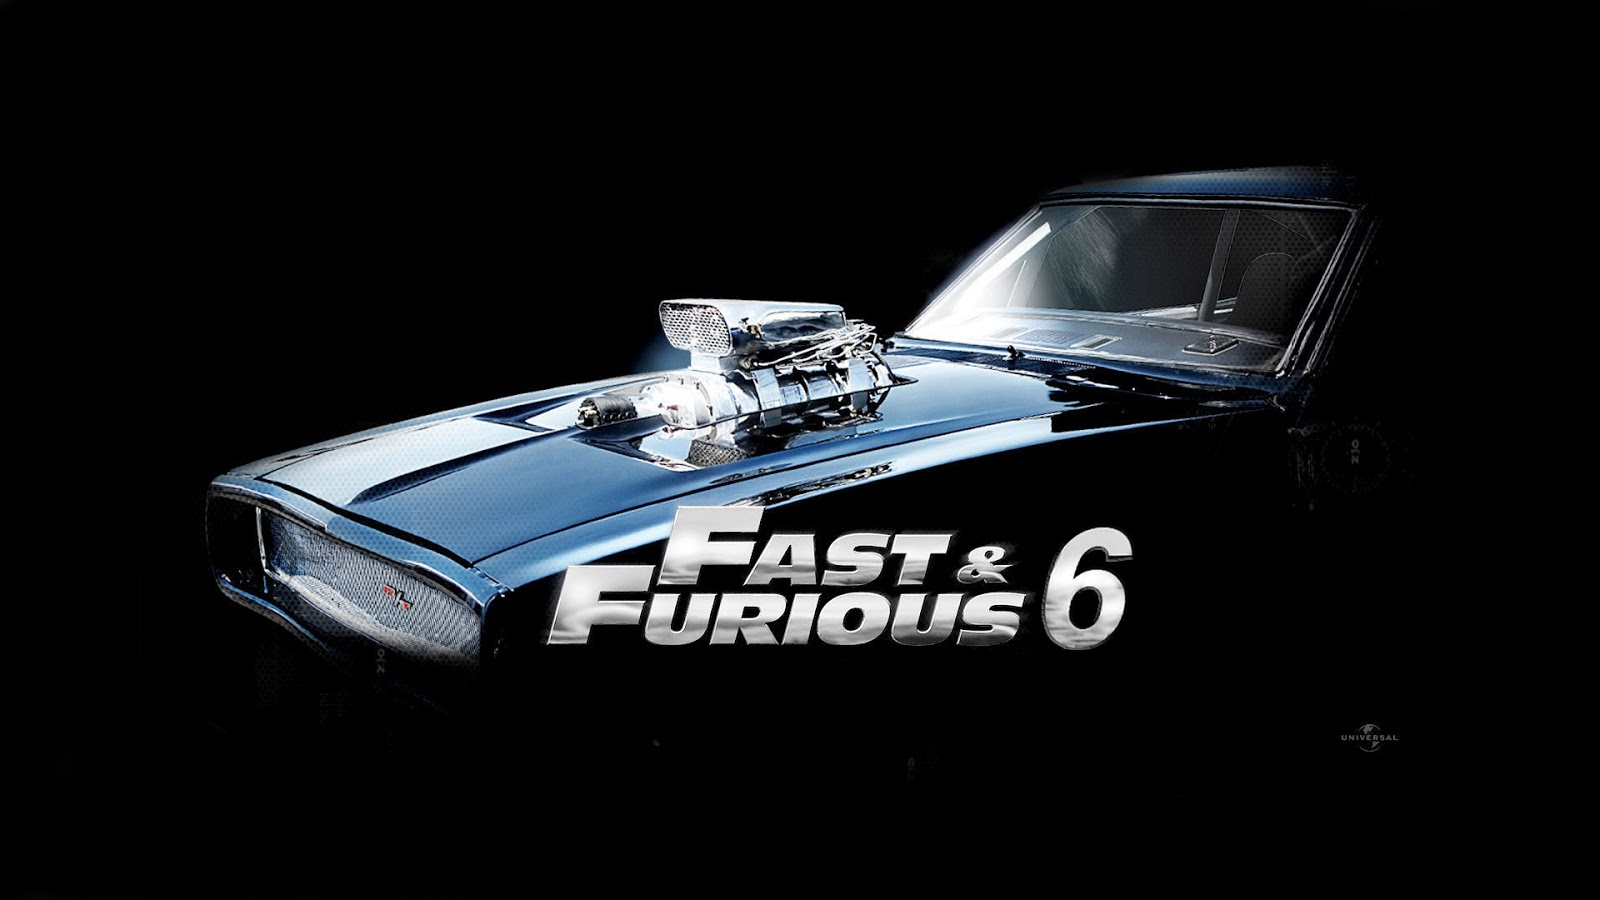 Fast and Furious 6 HD wallpapers 1080p | HD Wallpapers ...